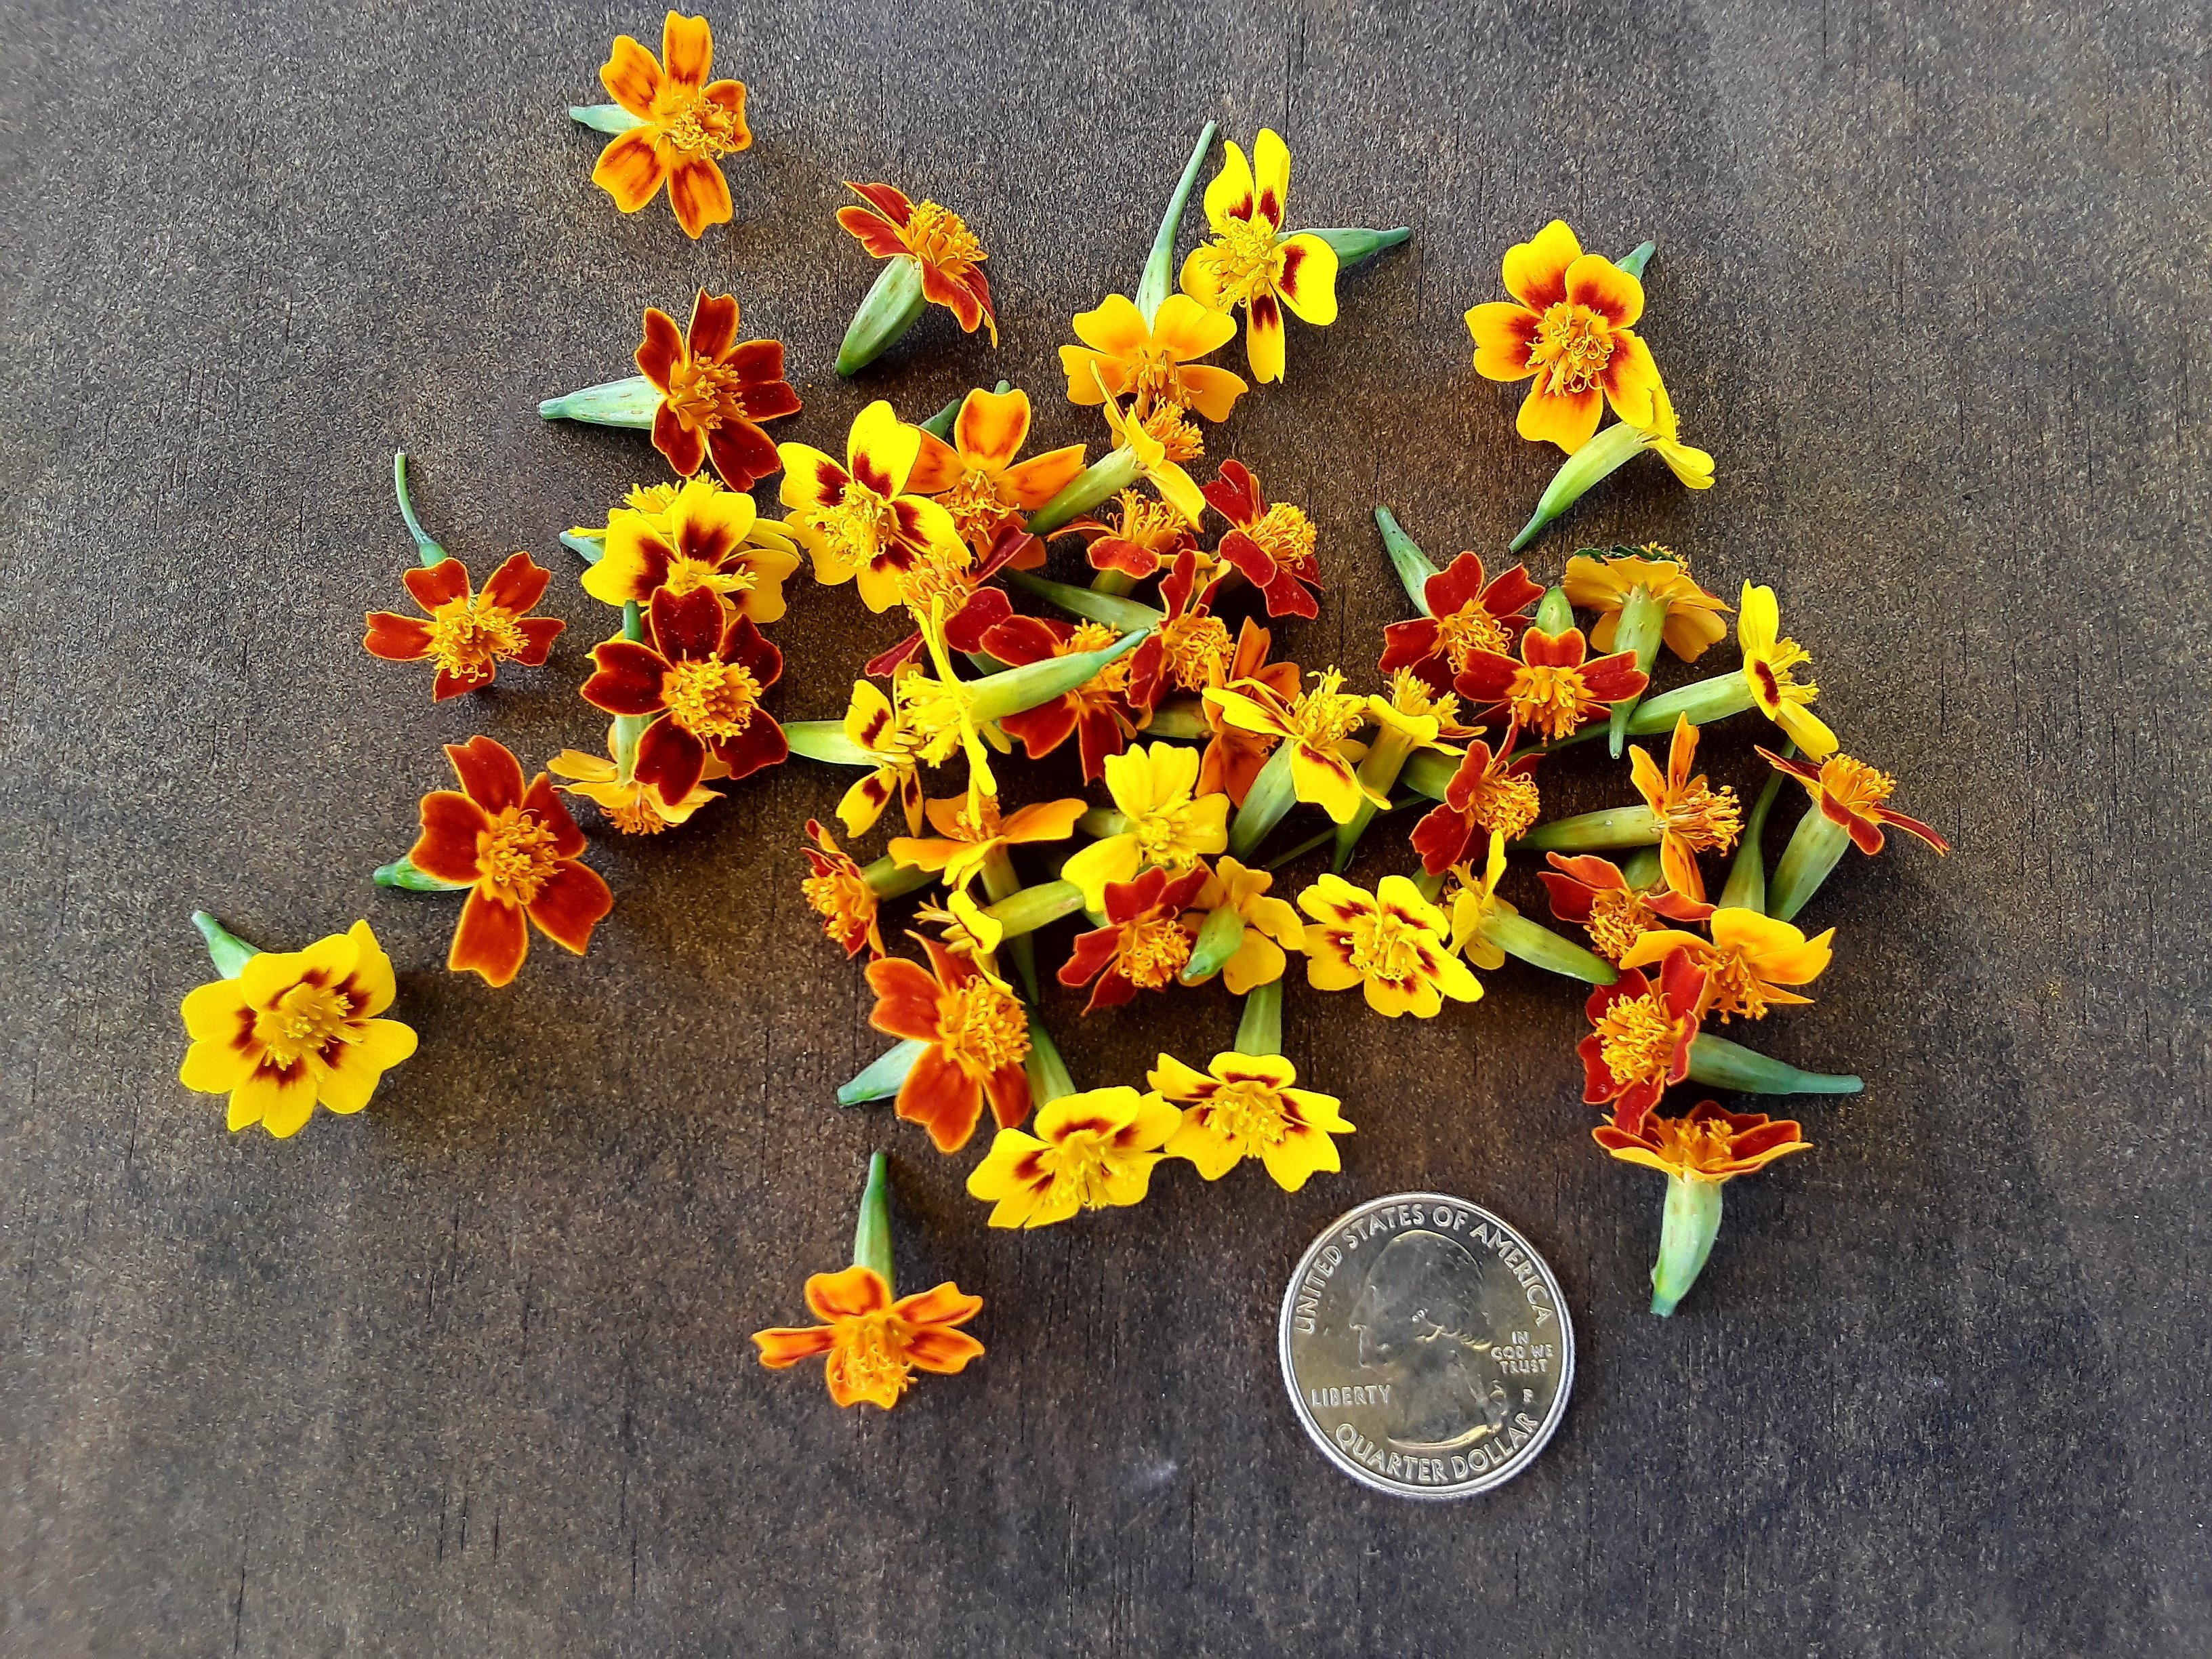 FRESH/EDIBLE Marigold flower medley. Tagettes variety. *50 Count 00005